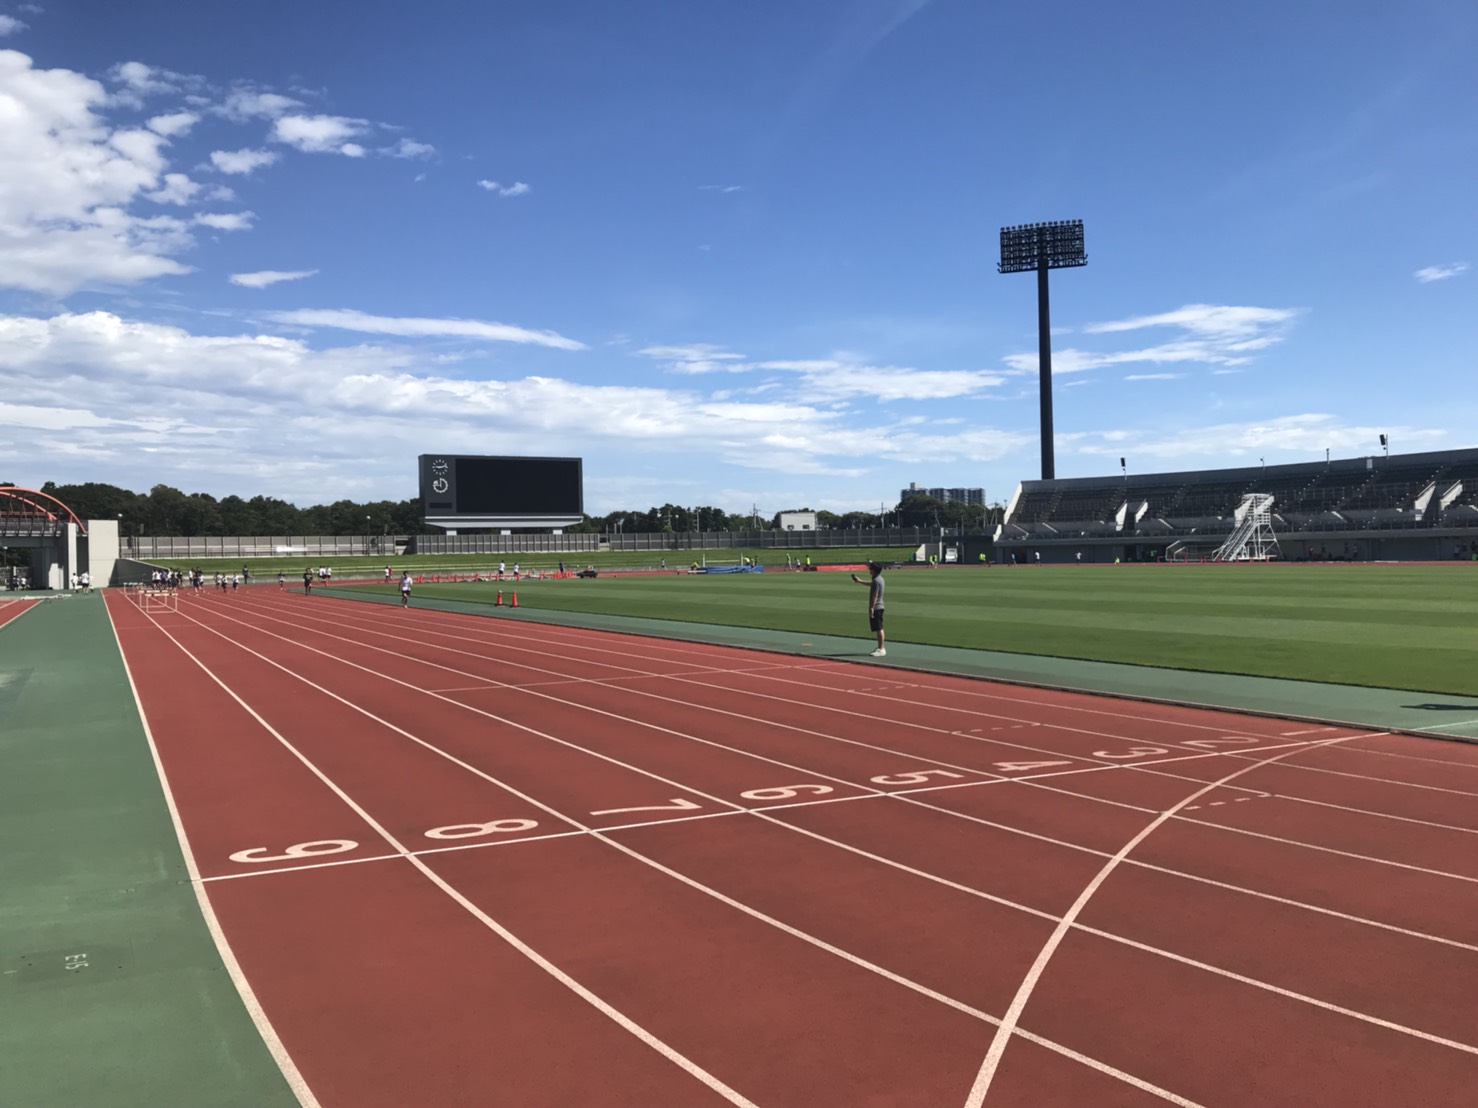 300mの走り方や練習